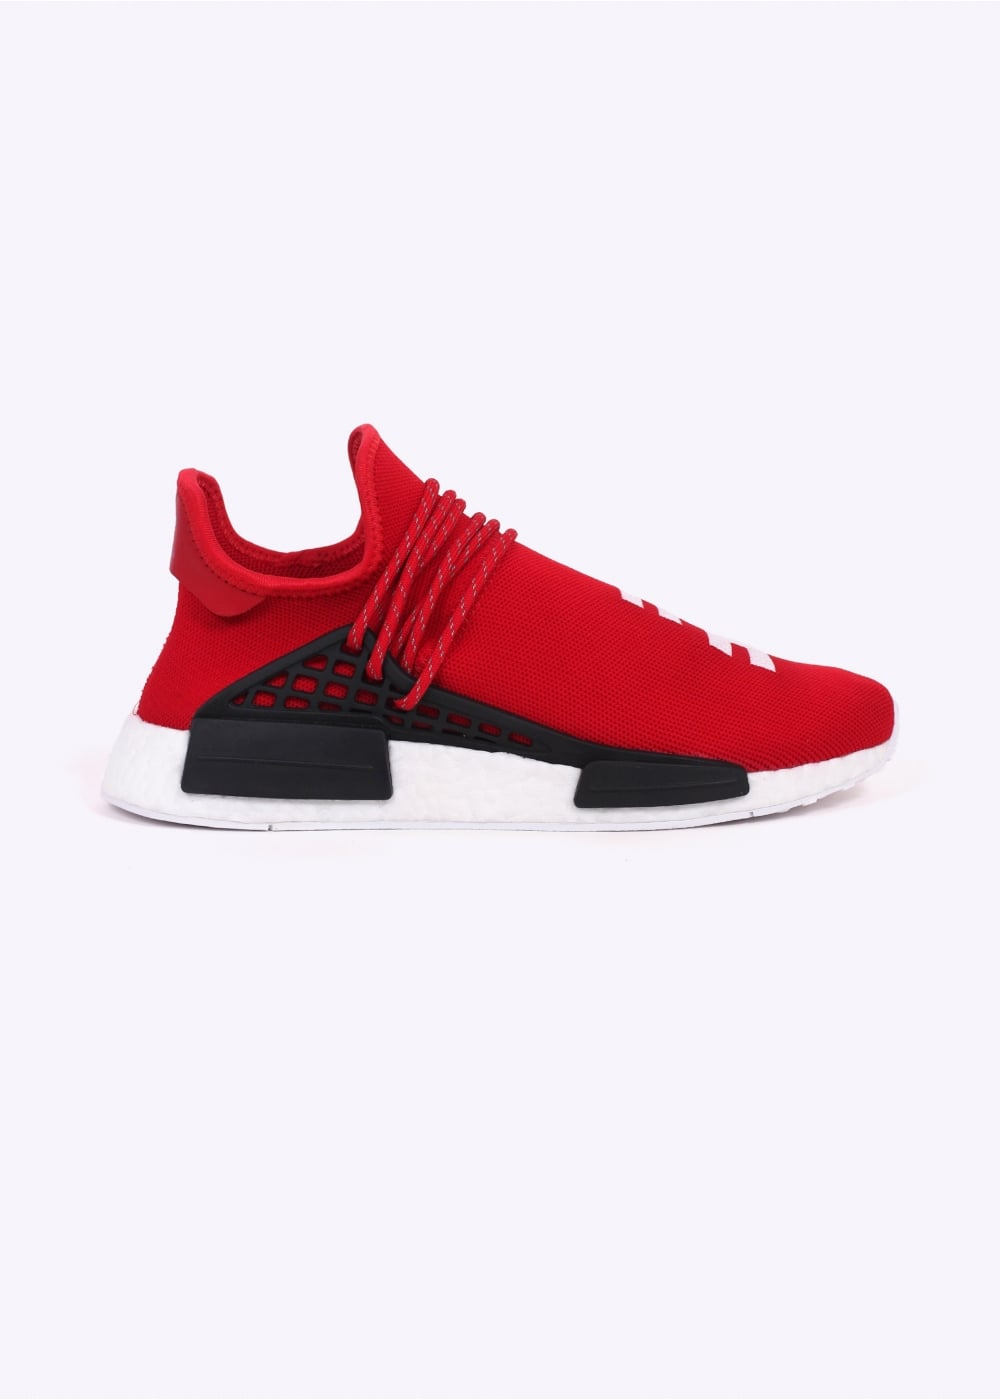 2d9b3807ad50 adidas Originals Footwear x PW Human Race NMD - Red - Triads Mens from  Triads UK